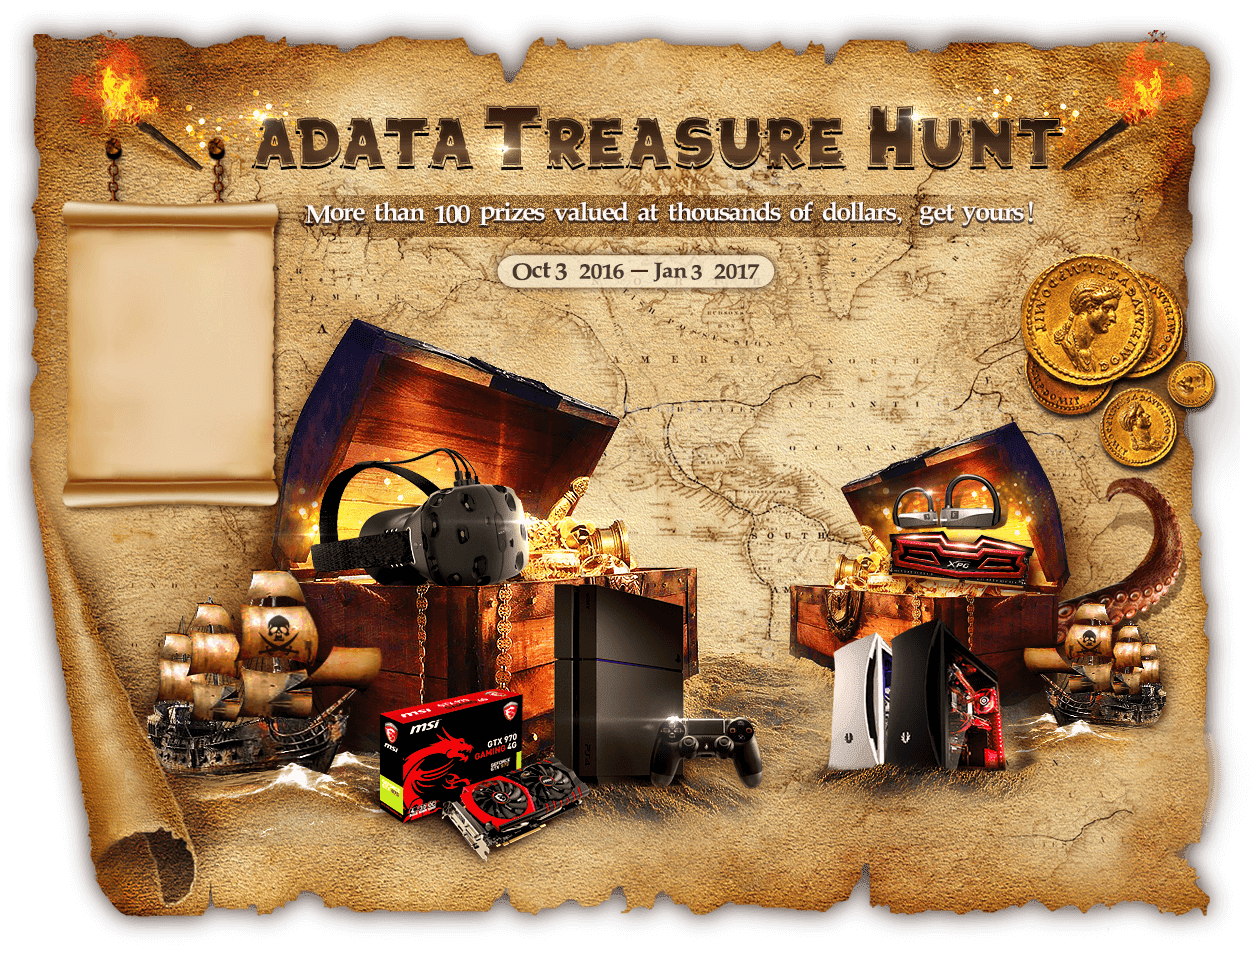 ADATA Treasure Hunt Promotional Campaign